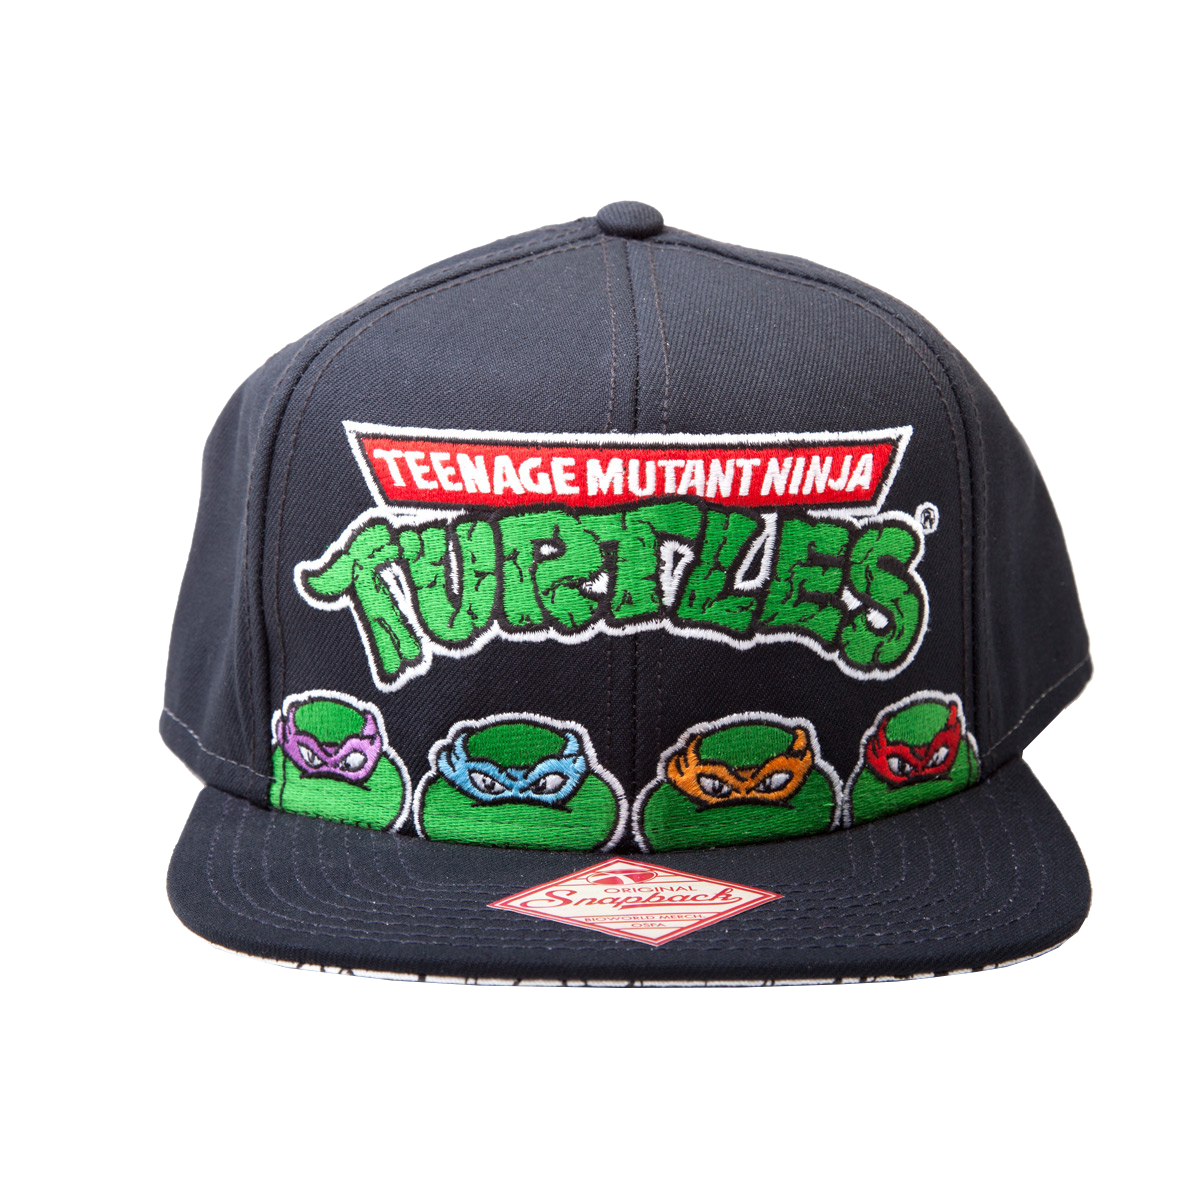 Teenage Mutant Ninja Turtles Snapback Cap